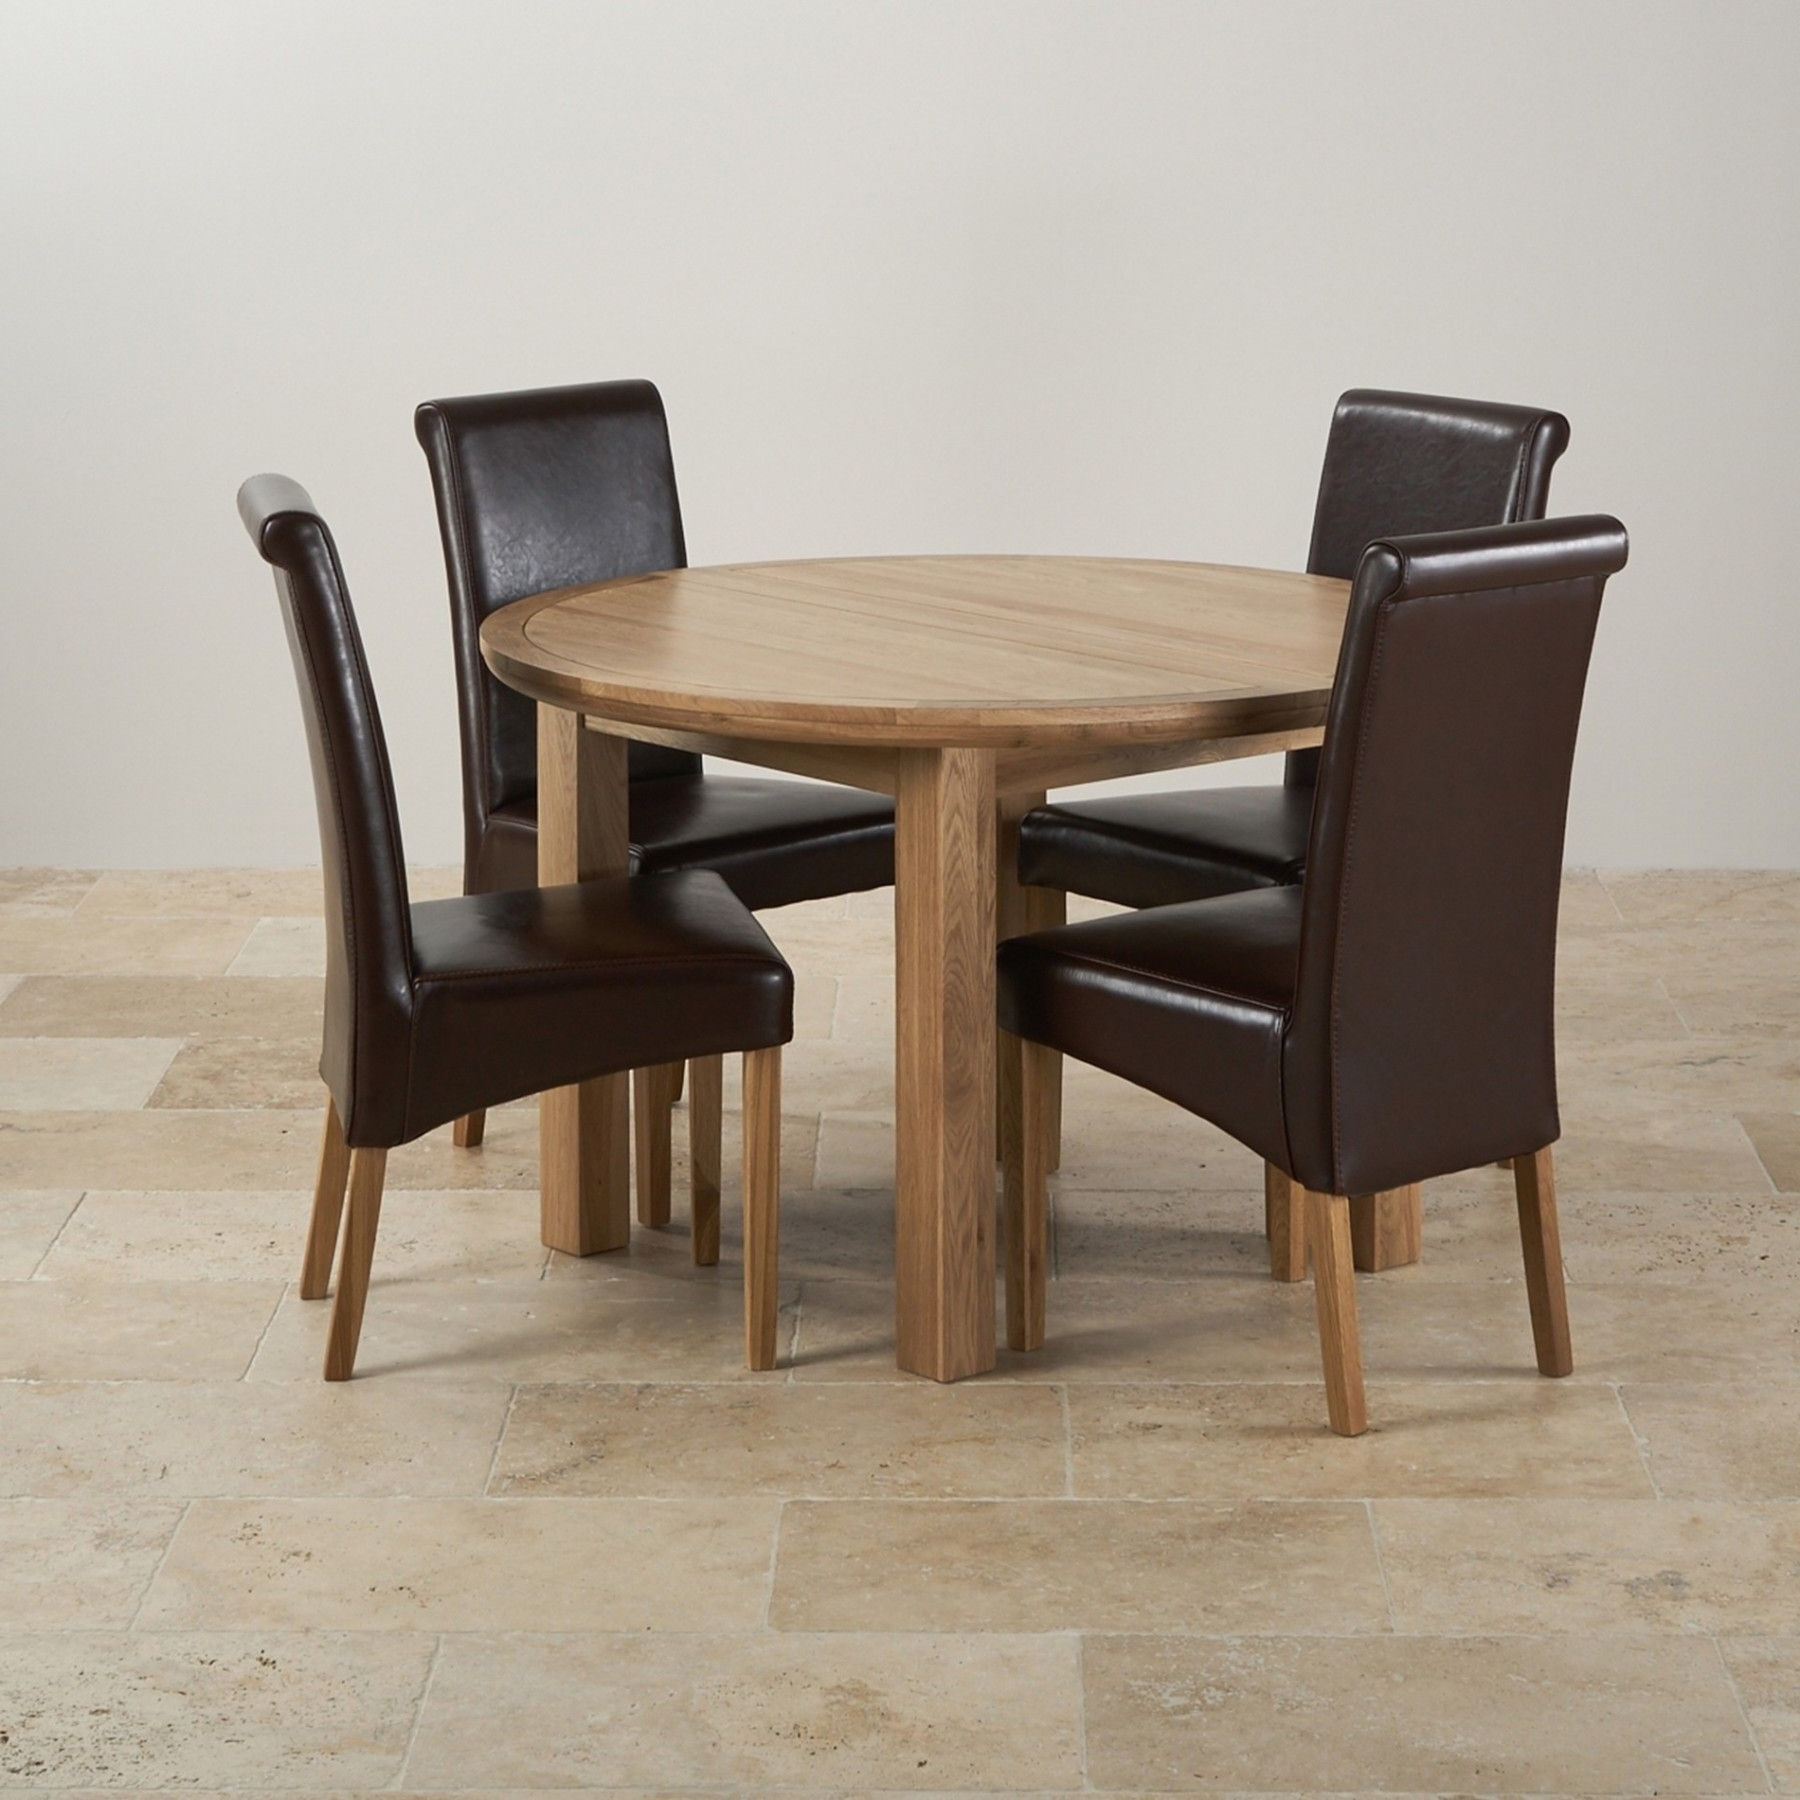 Most Popular Round Extending Oak Dining Tables And Chairs Regarding The Knightbridge Solid Oak Round Extending Dining Table Is Ideal For (View 13 of 25)